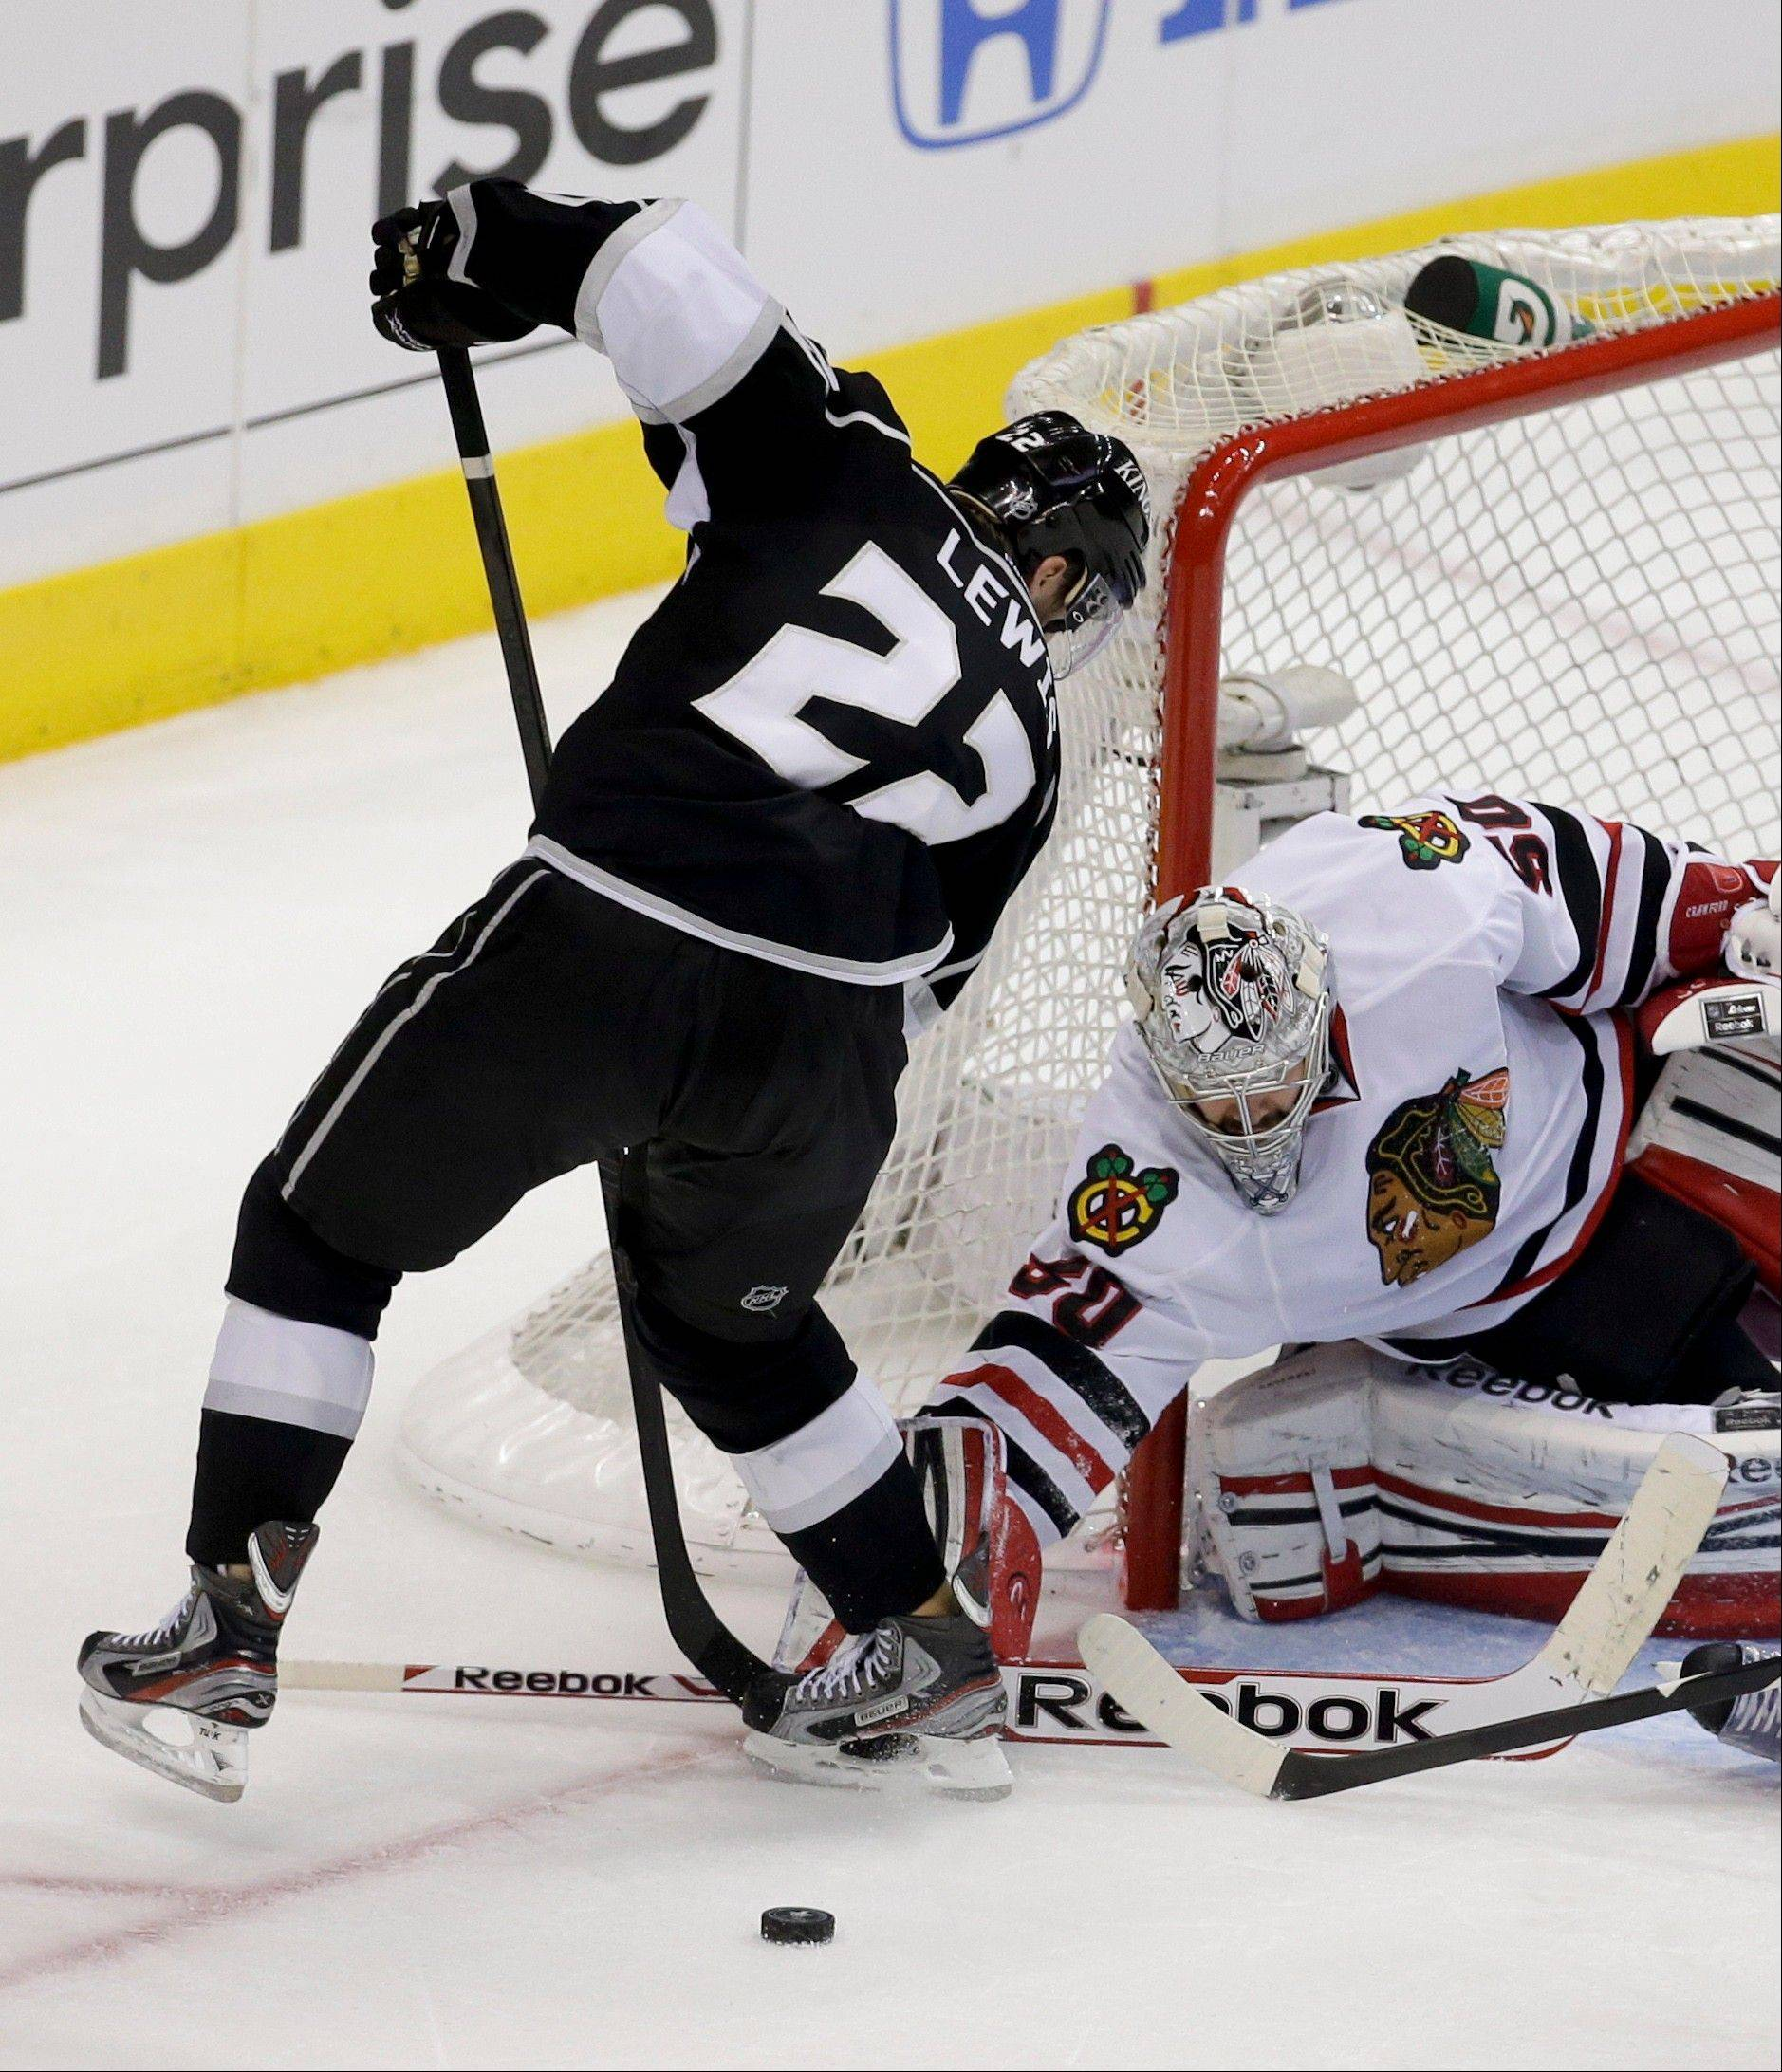 Chicago Blackhawks goalie Corey Crawford, right, blocks a shot by Los Angeles Kings center Trevor Lewis during the third period in Game 4 of the NHL hockey Stanley Cup playoffs Western Conference finals, in Los Angeles on Thursday, June 6, 2013. the Chicago Blackhawks won 3-2. (AP Photo/Chris Carlson)